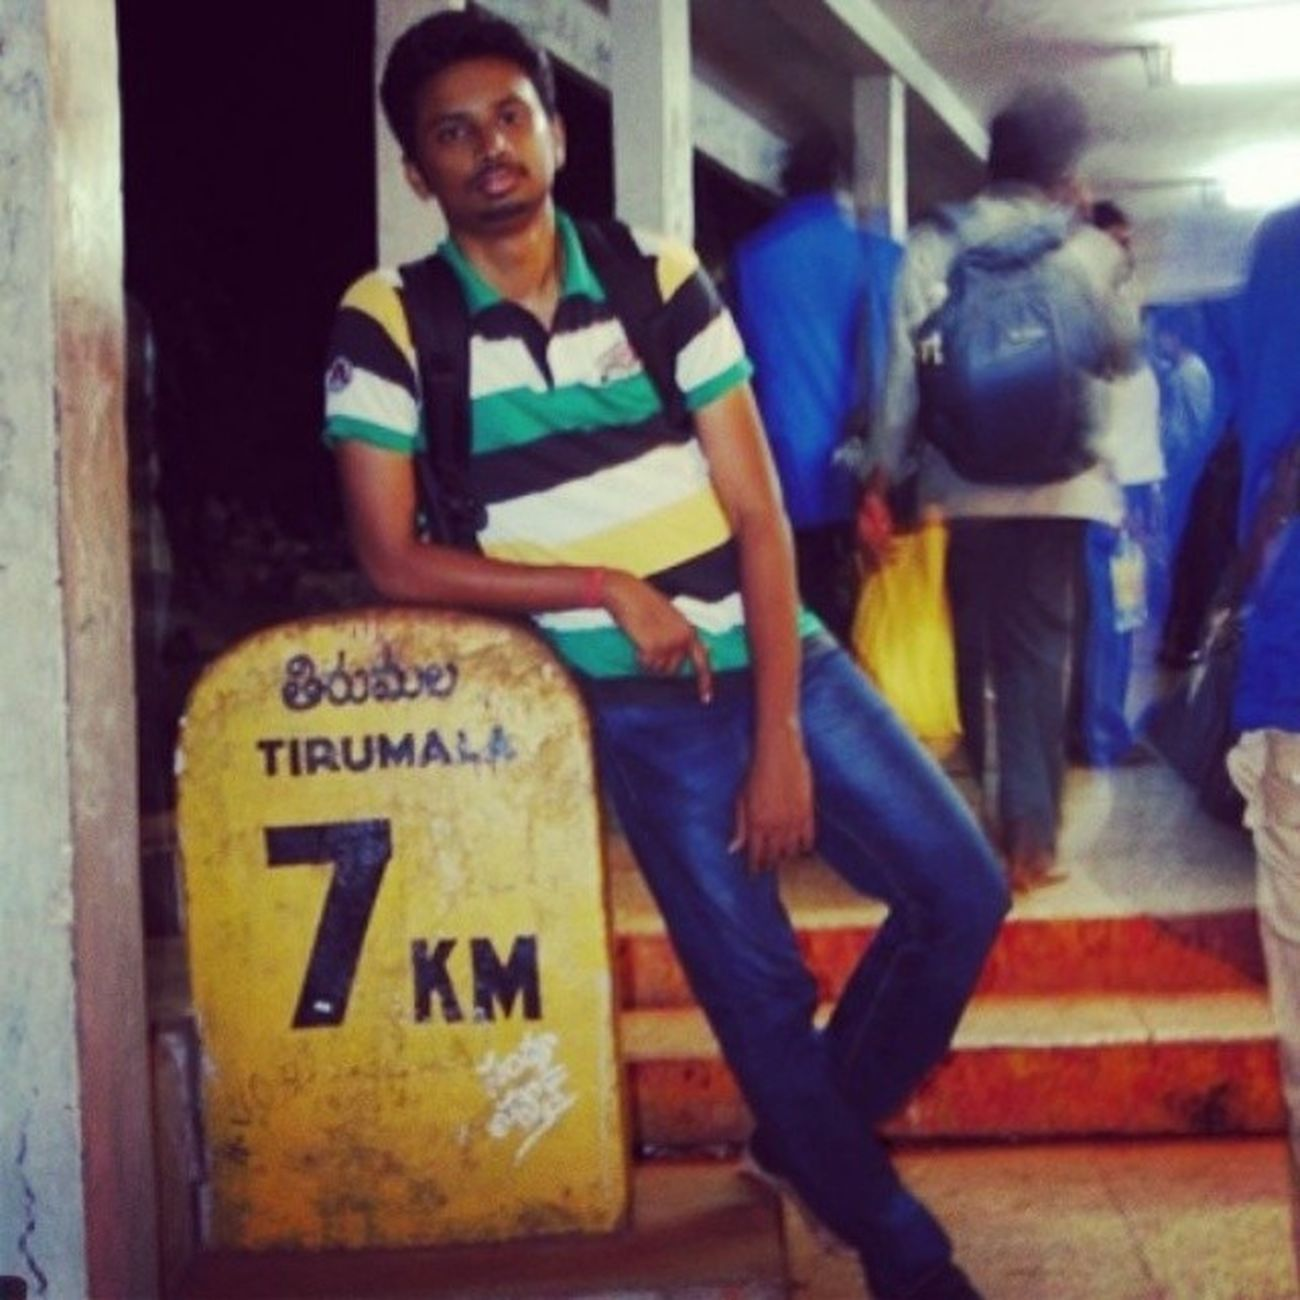 Great_trip Unforgettable Days  Trekking to meet lord_venki tirupati tirumala Andhra_Pradesh tagsforlikes posing tamilswag tamilpaiyan click by @rsvijayashankar